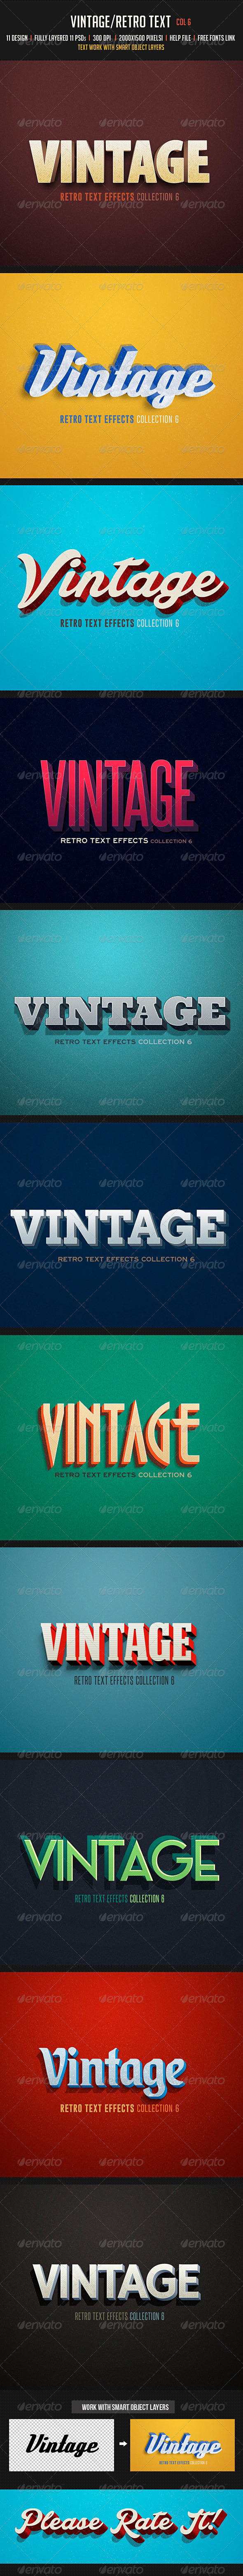 GraphicRiver Vintage Retro Text Col 6 8143607